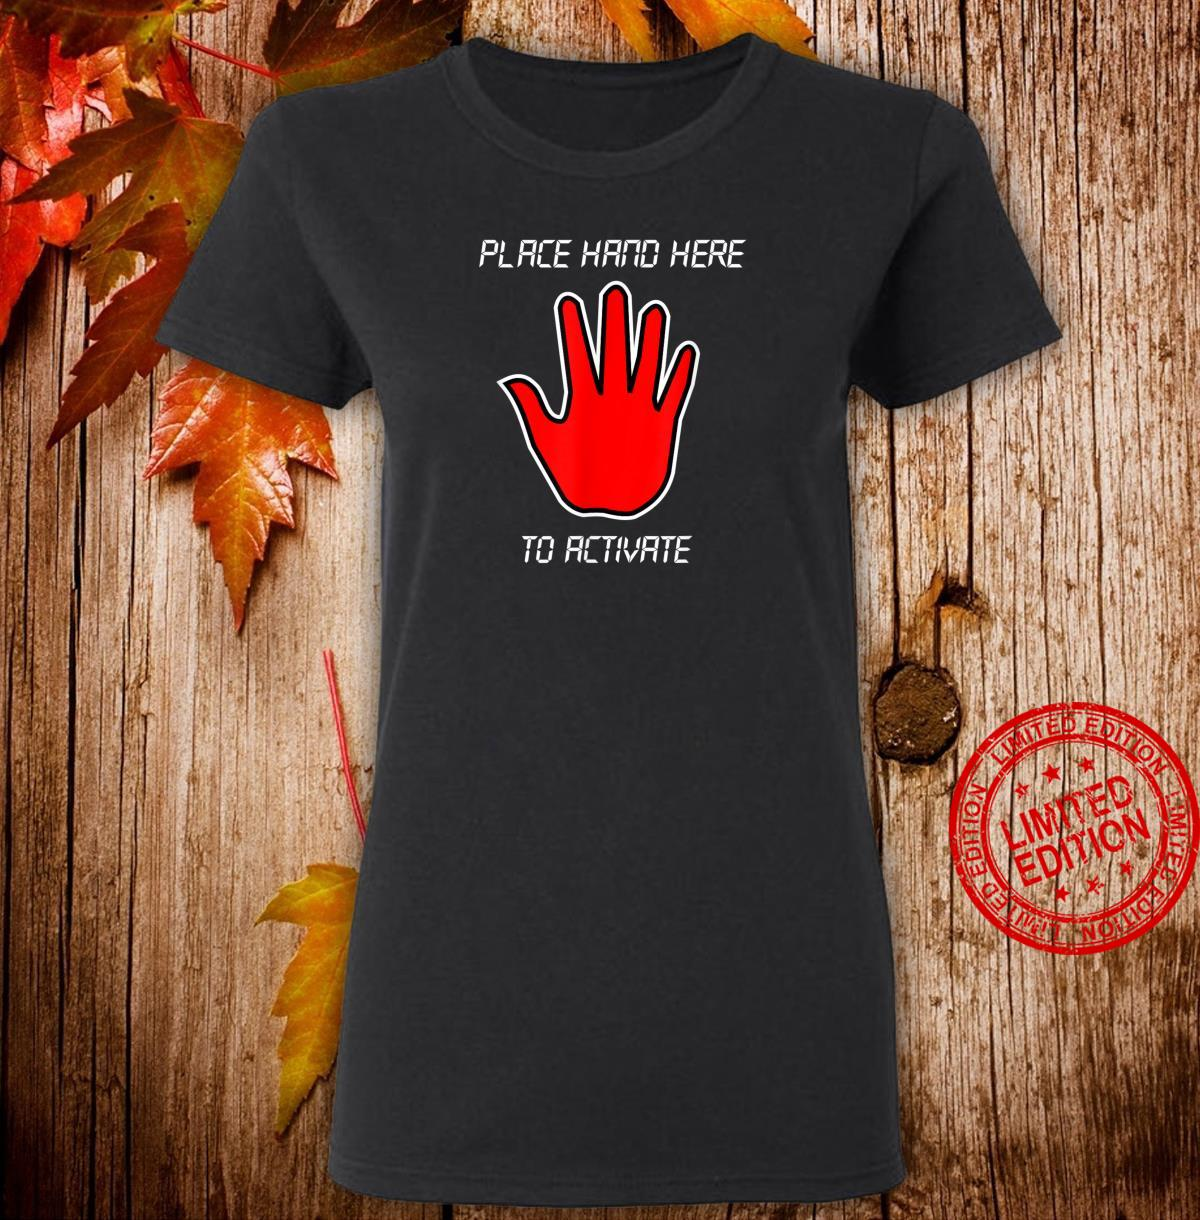 Funny Place Hand Here to Activate Gamer Shirt Shirt ladies tee